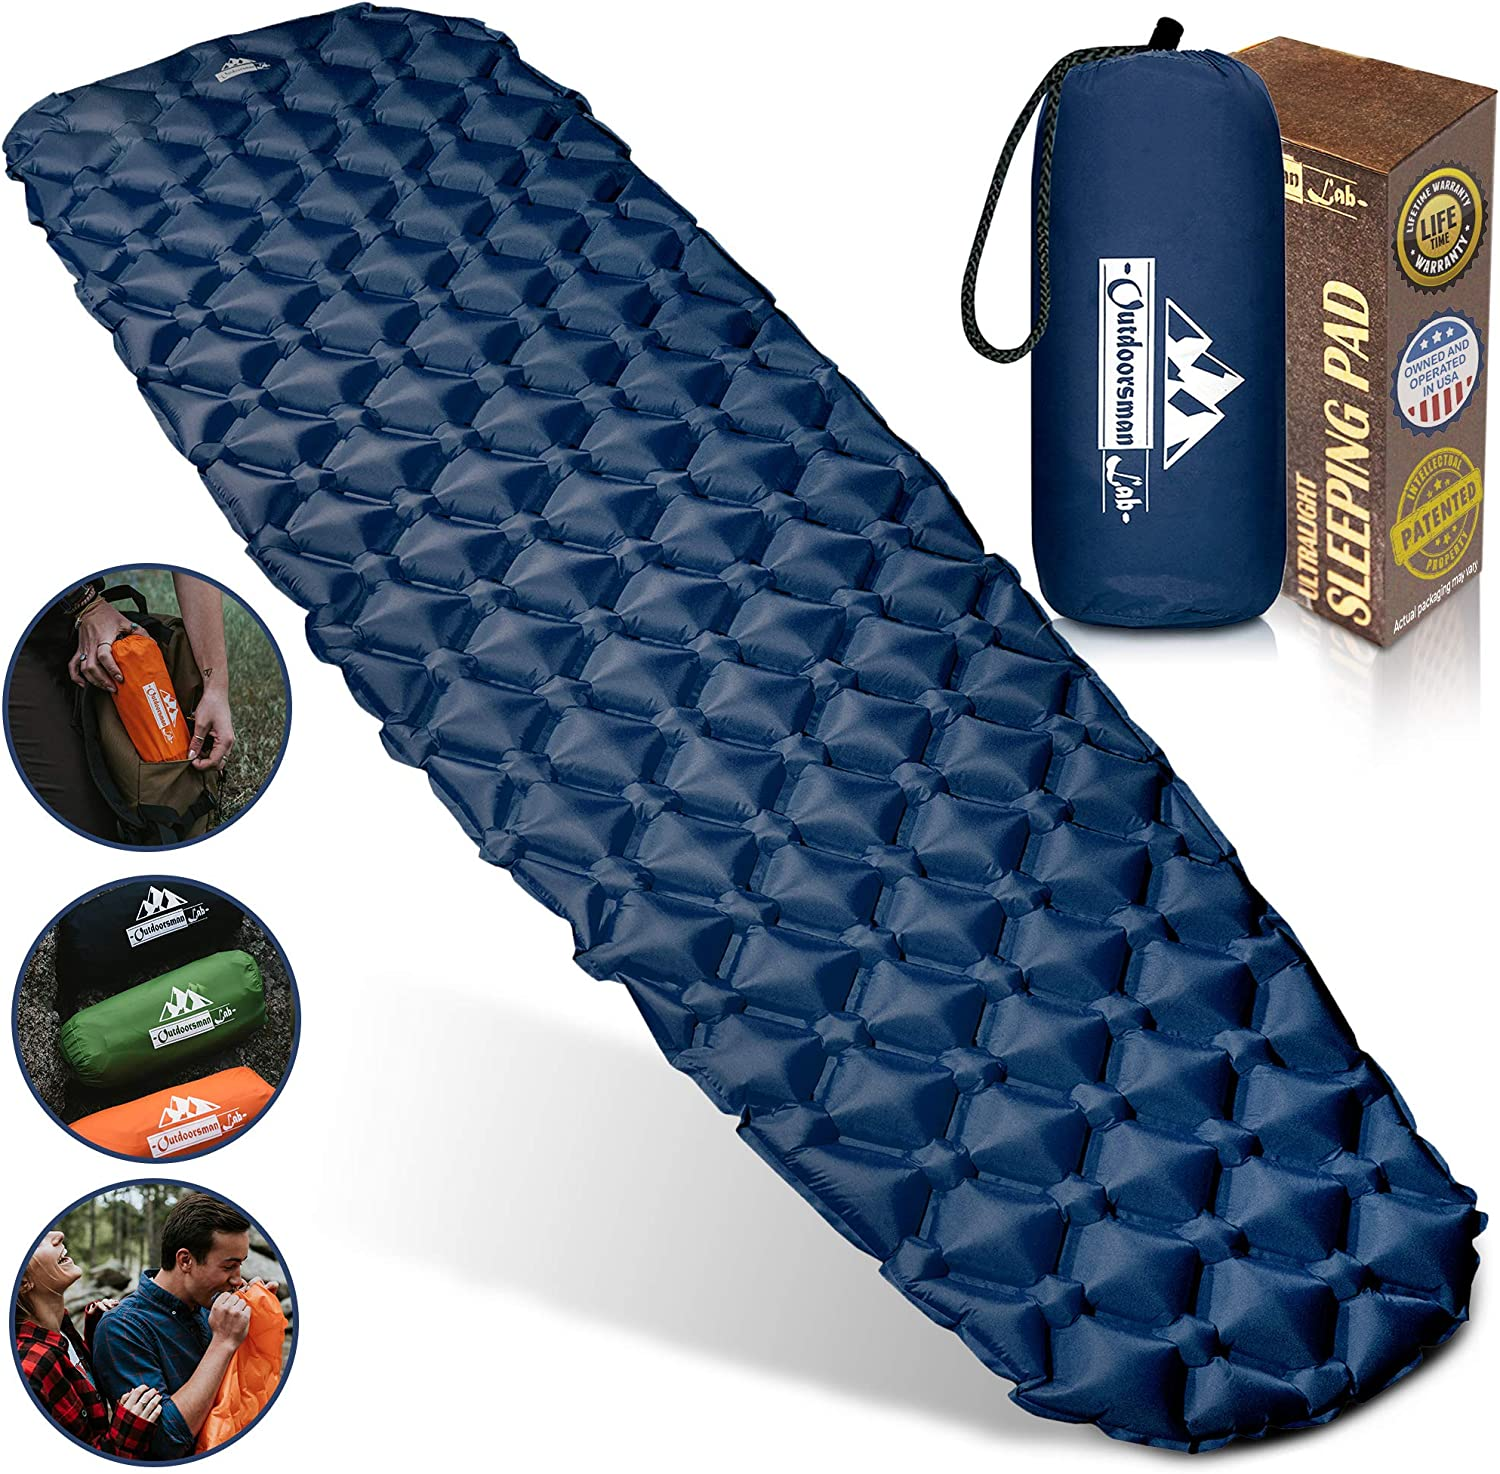 Outdoorsman Lab Camping Sleeping Pad, Ultralight Inflatable Camping Pad, Compact Hiking & Backpacking Gear Includes Camping Mat, Bag & Repair Kit